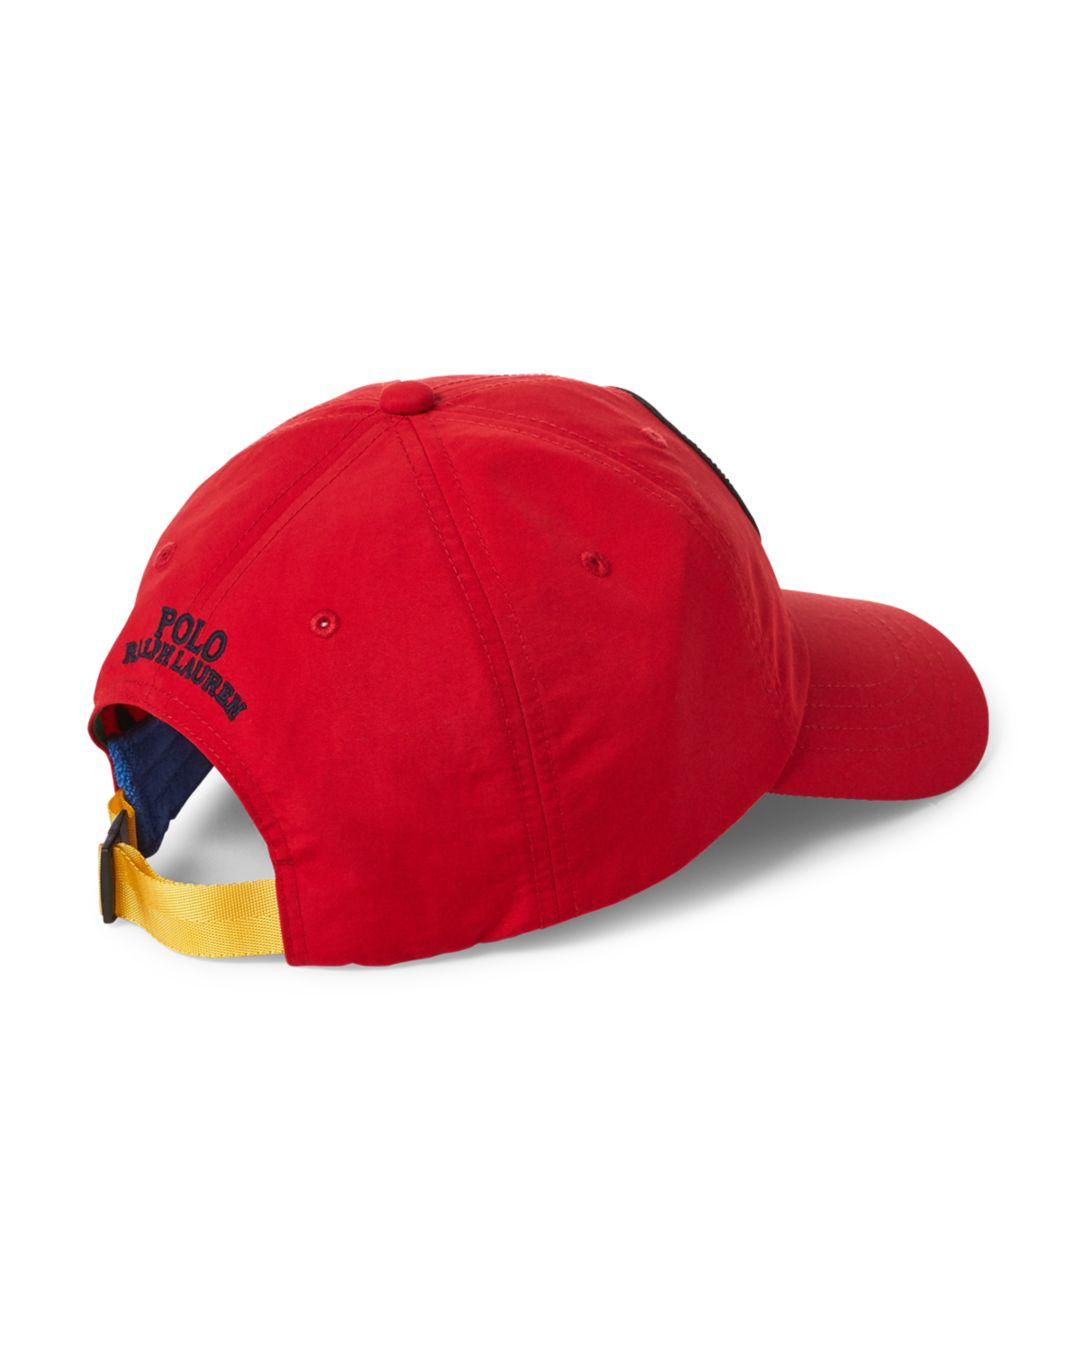 cccddb5c388 Lyst - Polo Ralph Lauren Great Outdoors Classic Sports Cap in Red for Men -  Save 21%